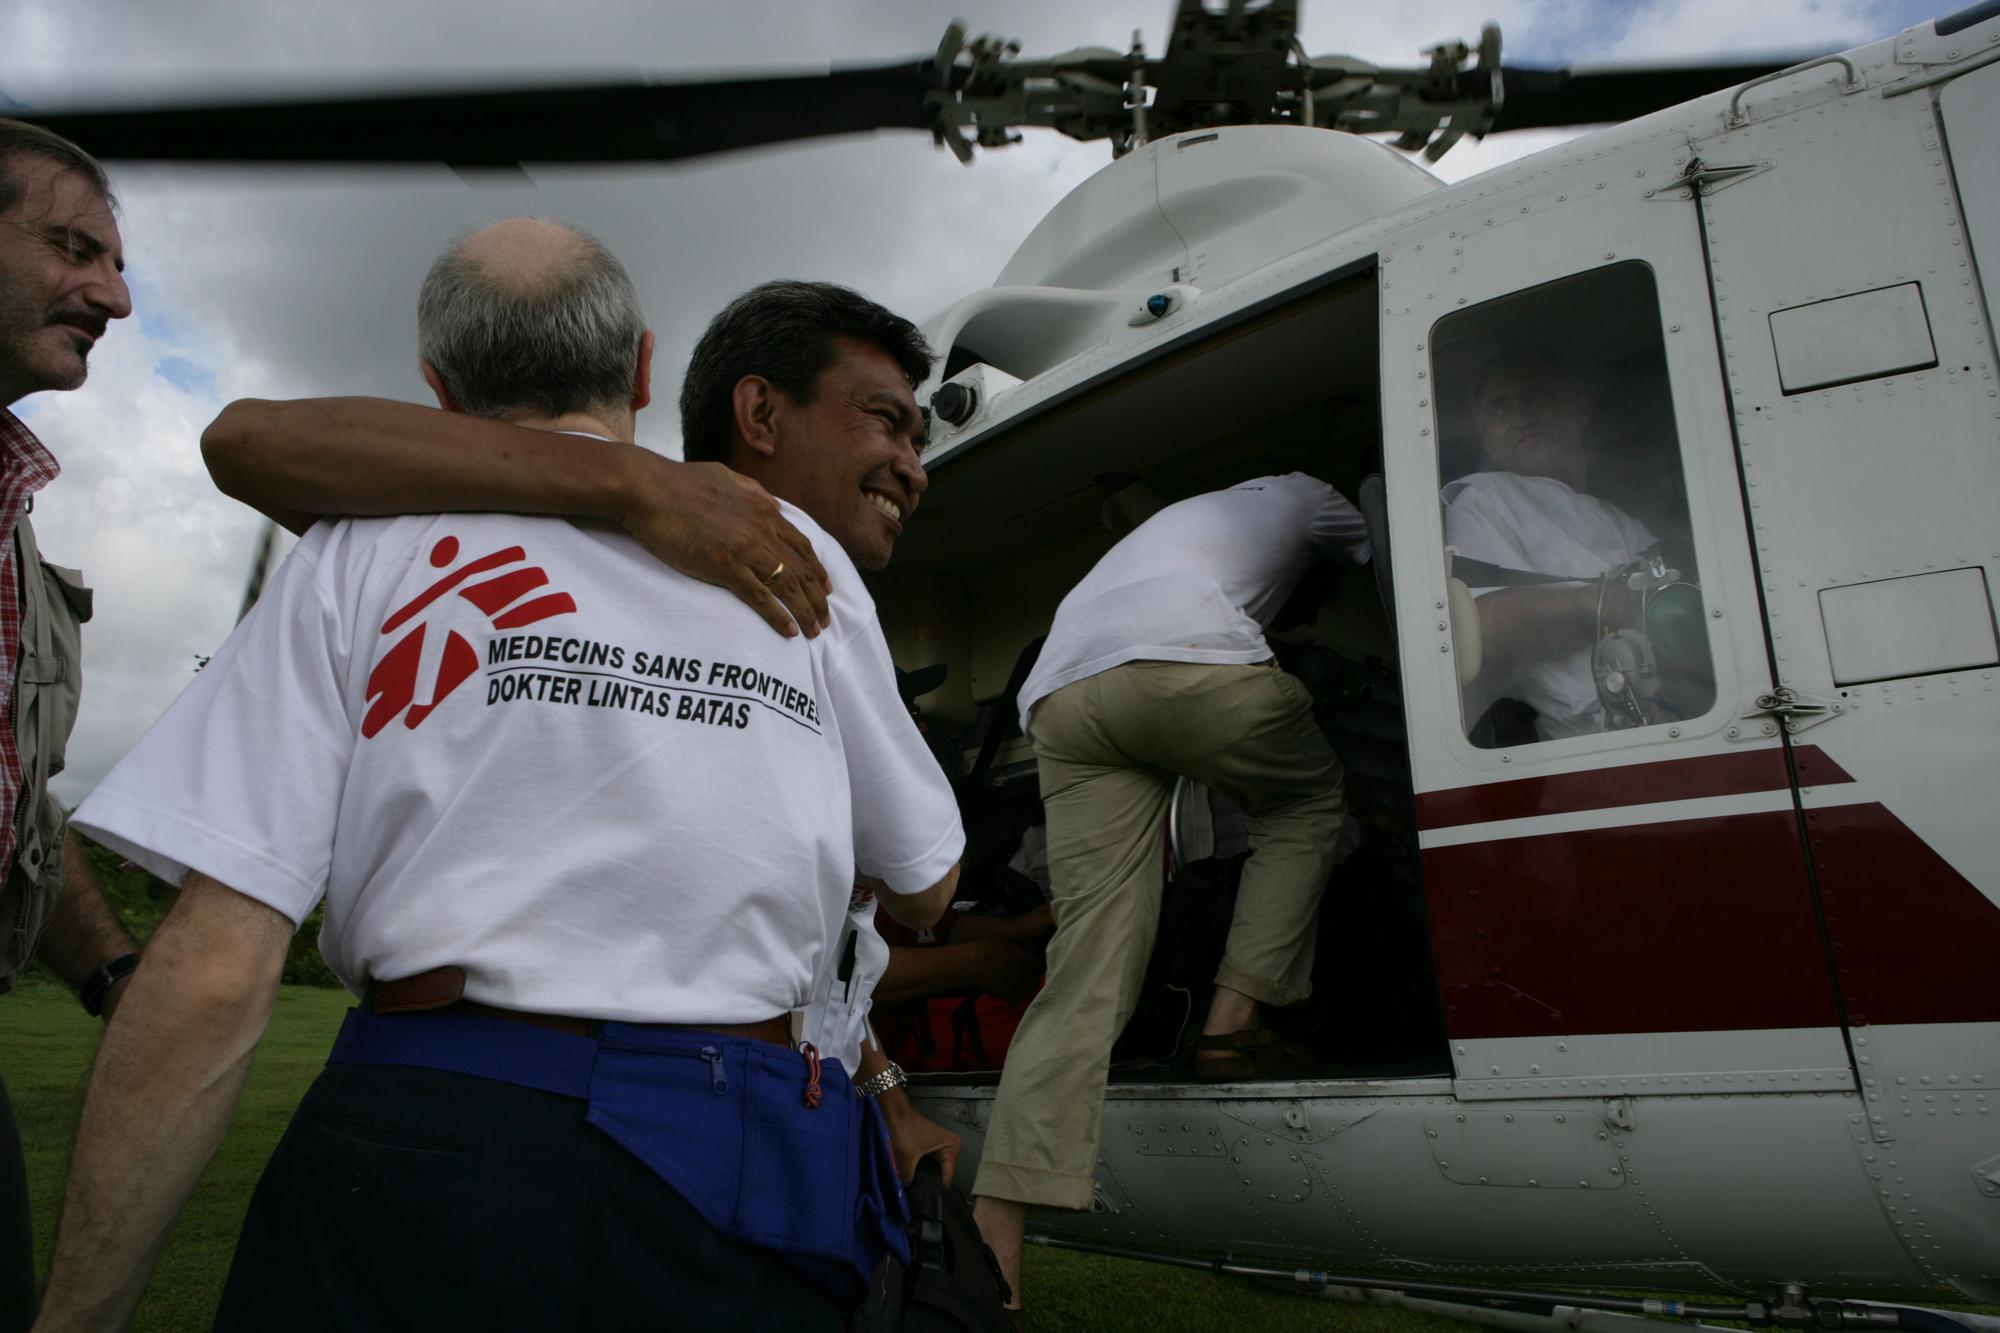 A group of people standing close to a helicopter. One man hugs an MSF worker.